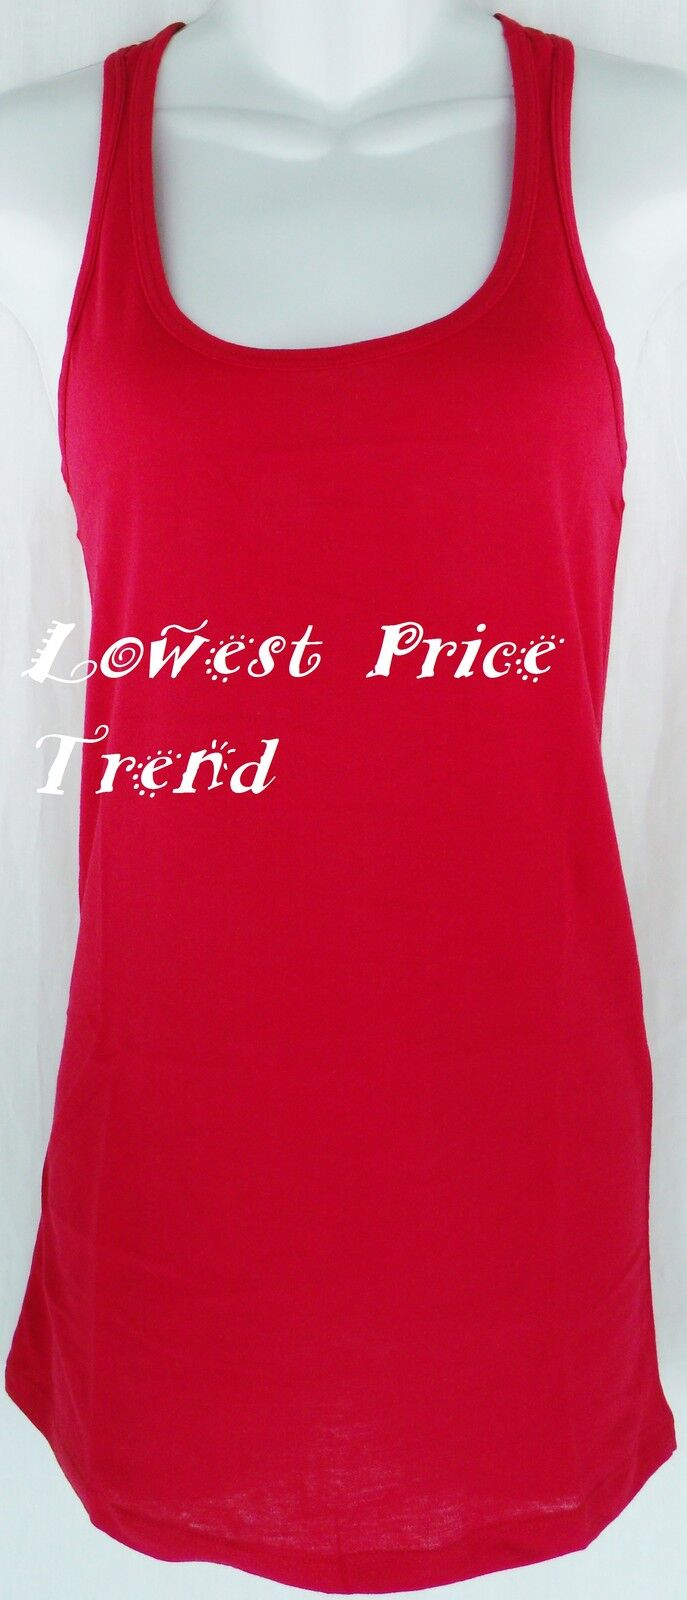 WHOLESALE PRICE, Racerback Tank Top 100% Cotton Basic Solid Hot Tee Cami TT402